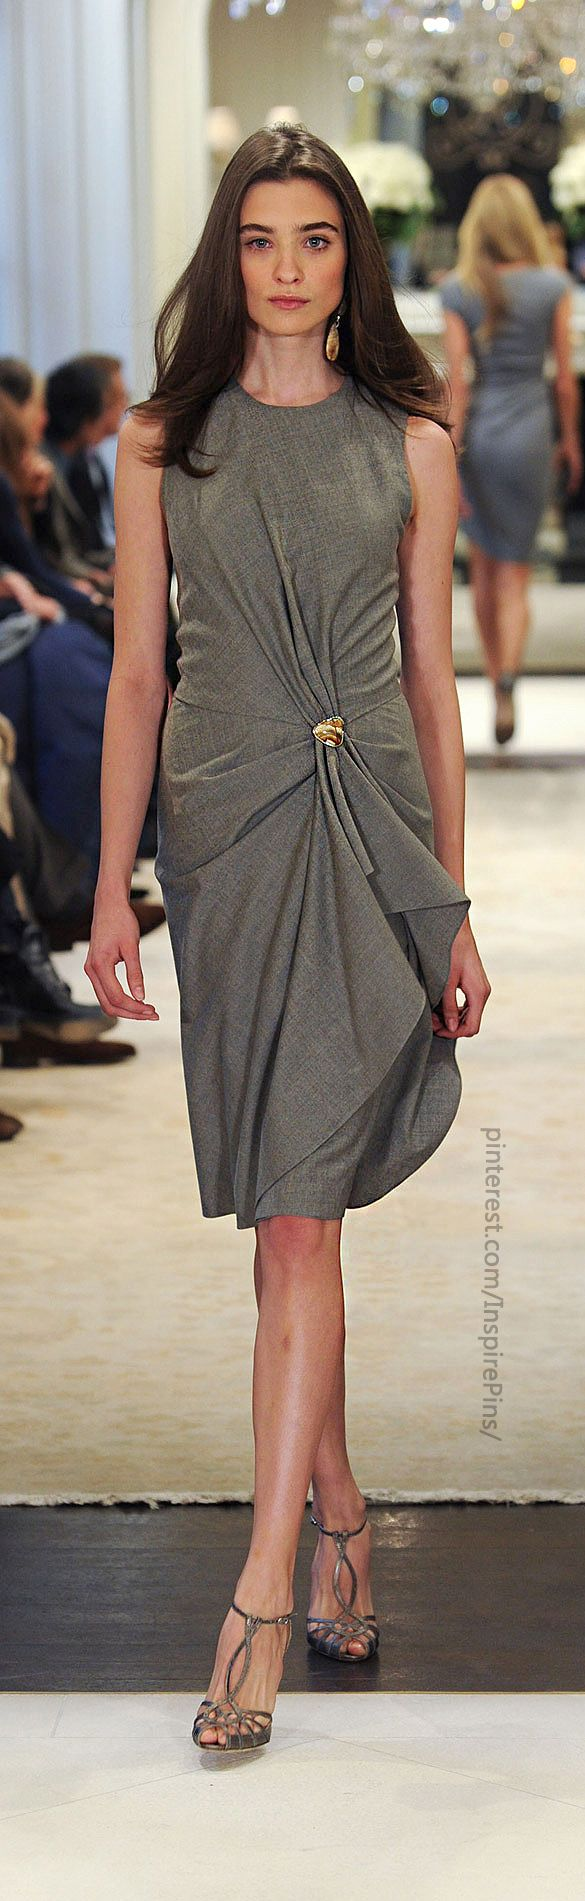 best frock quarry images on pinterest clothes clothing and